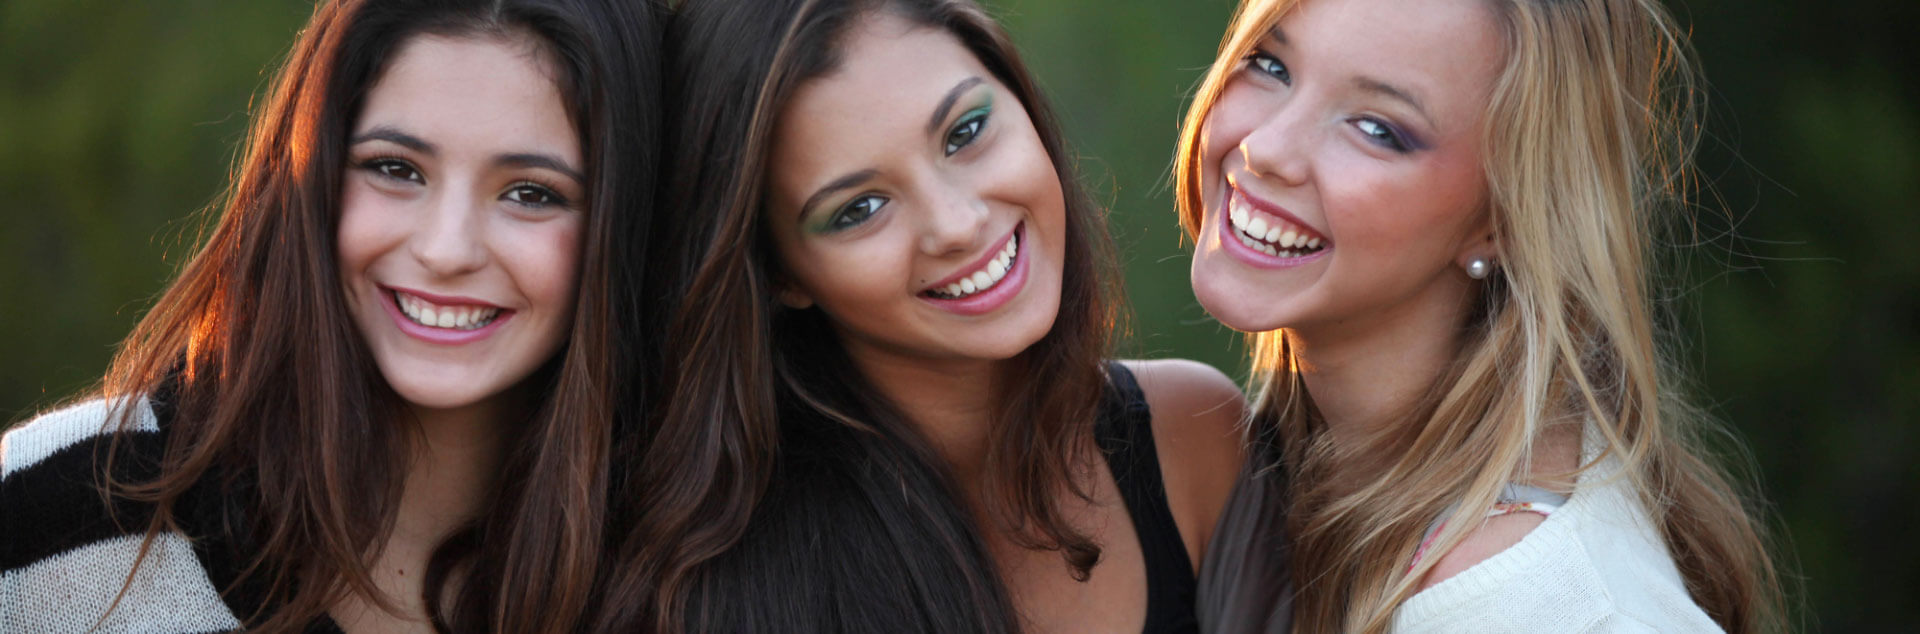 3 beautiful young women smiling beautifully as a result of cosmetic dentistry